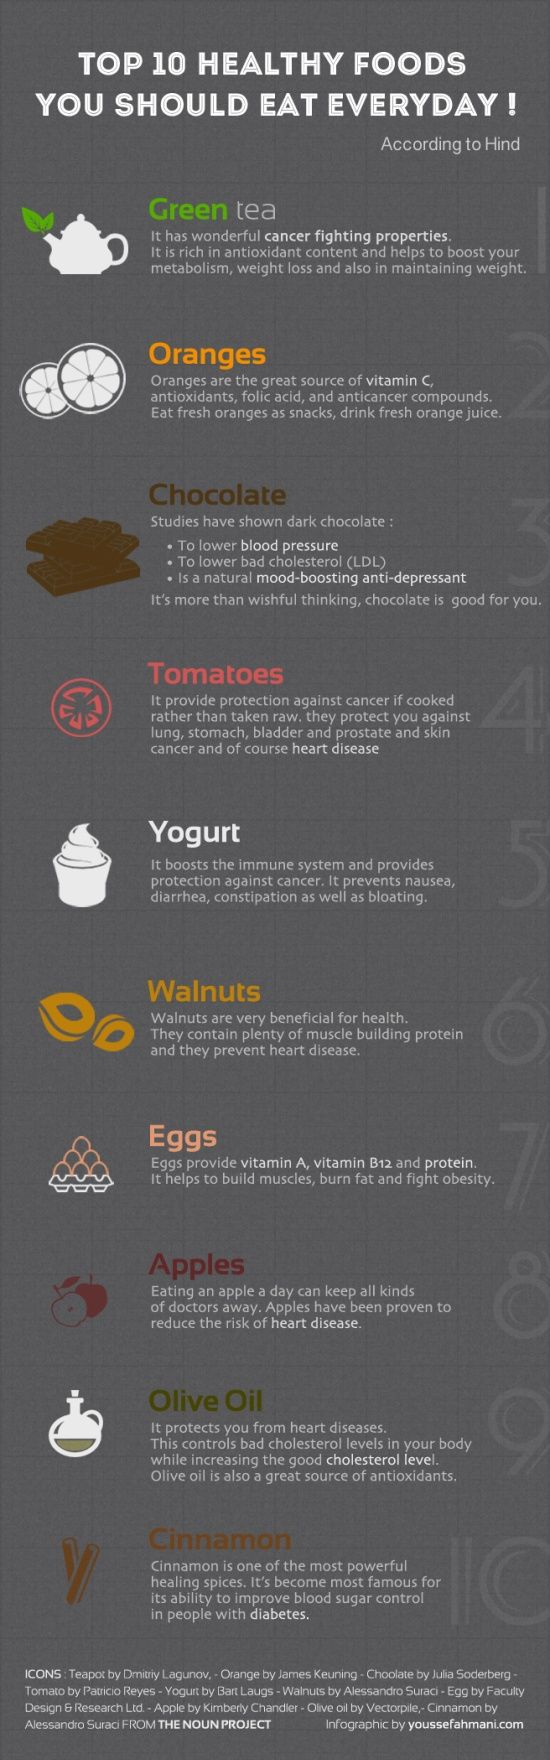 We found this infographic to be very interesting. So how about some yogurt for todays' breakfast? #weightloss #loseweight #infographic #yummy #diet #food #nutrition #healthy www.weightlossrevolutions.co.uk #healthyliving